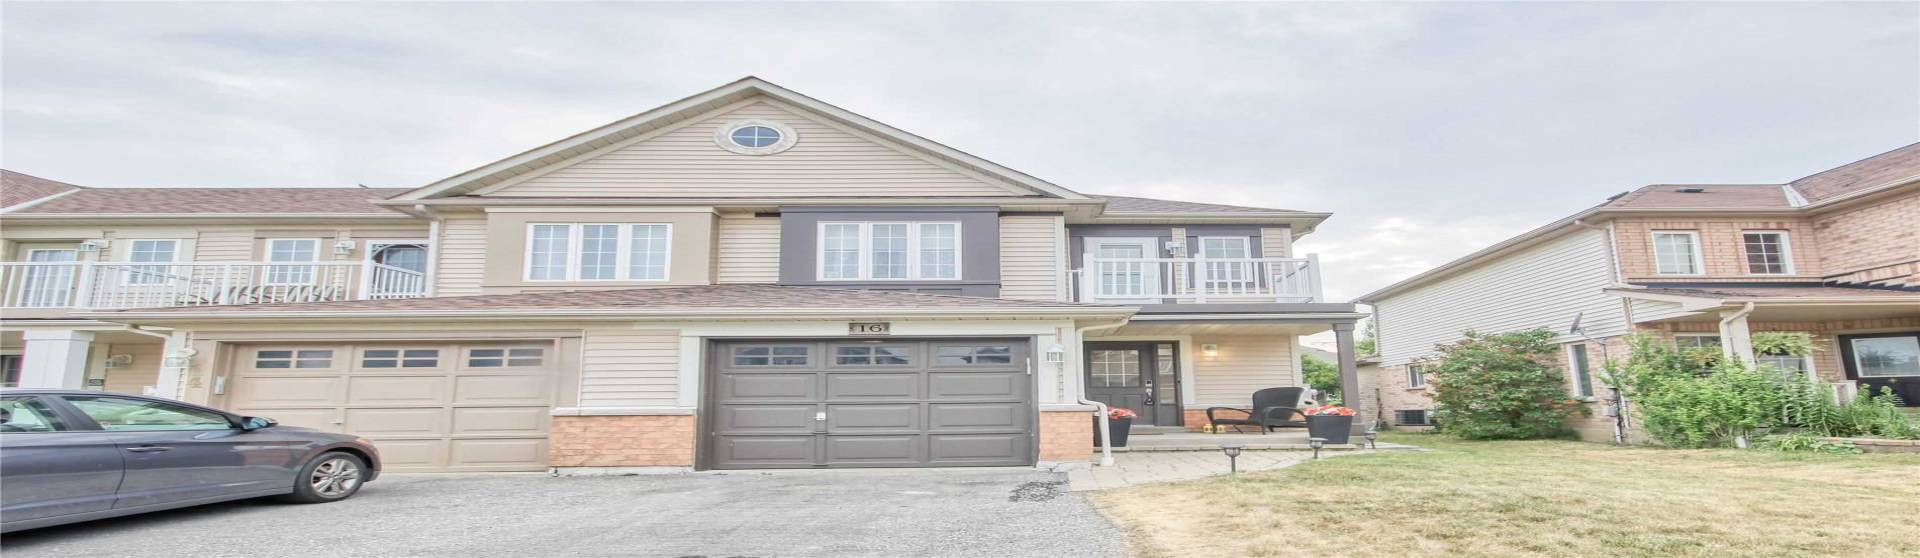 16 Inlet Bay Dr- Whitby- Ontario L1N9P1, 3 Bedrooms Bedrooms, 7 Rooms Rooms,4 BathroomsBathrooms,Att/row/twnhouse,Sale,Inlet Bay,E4807408